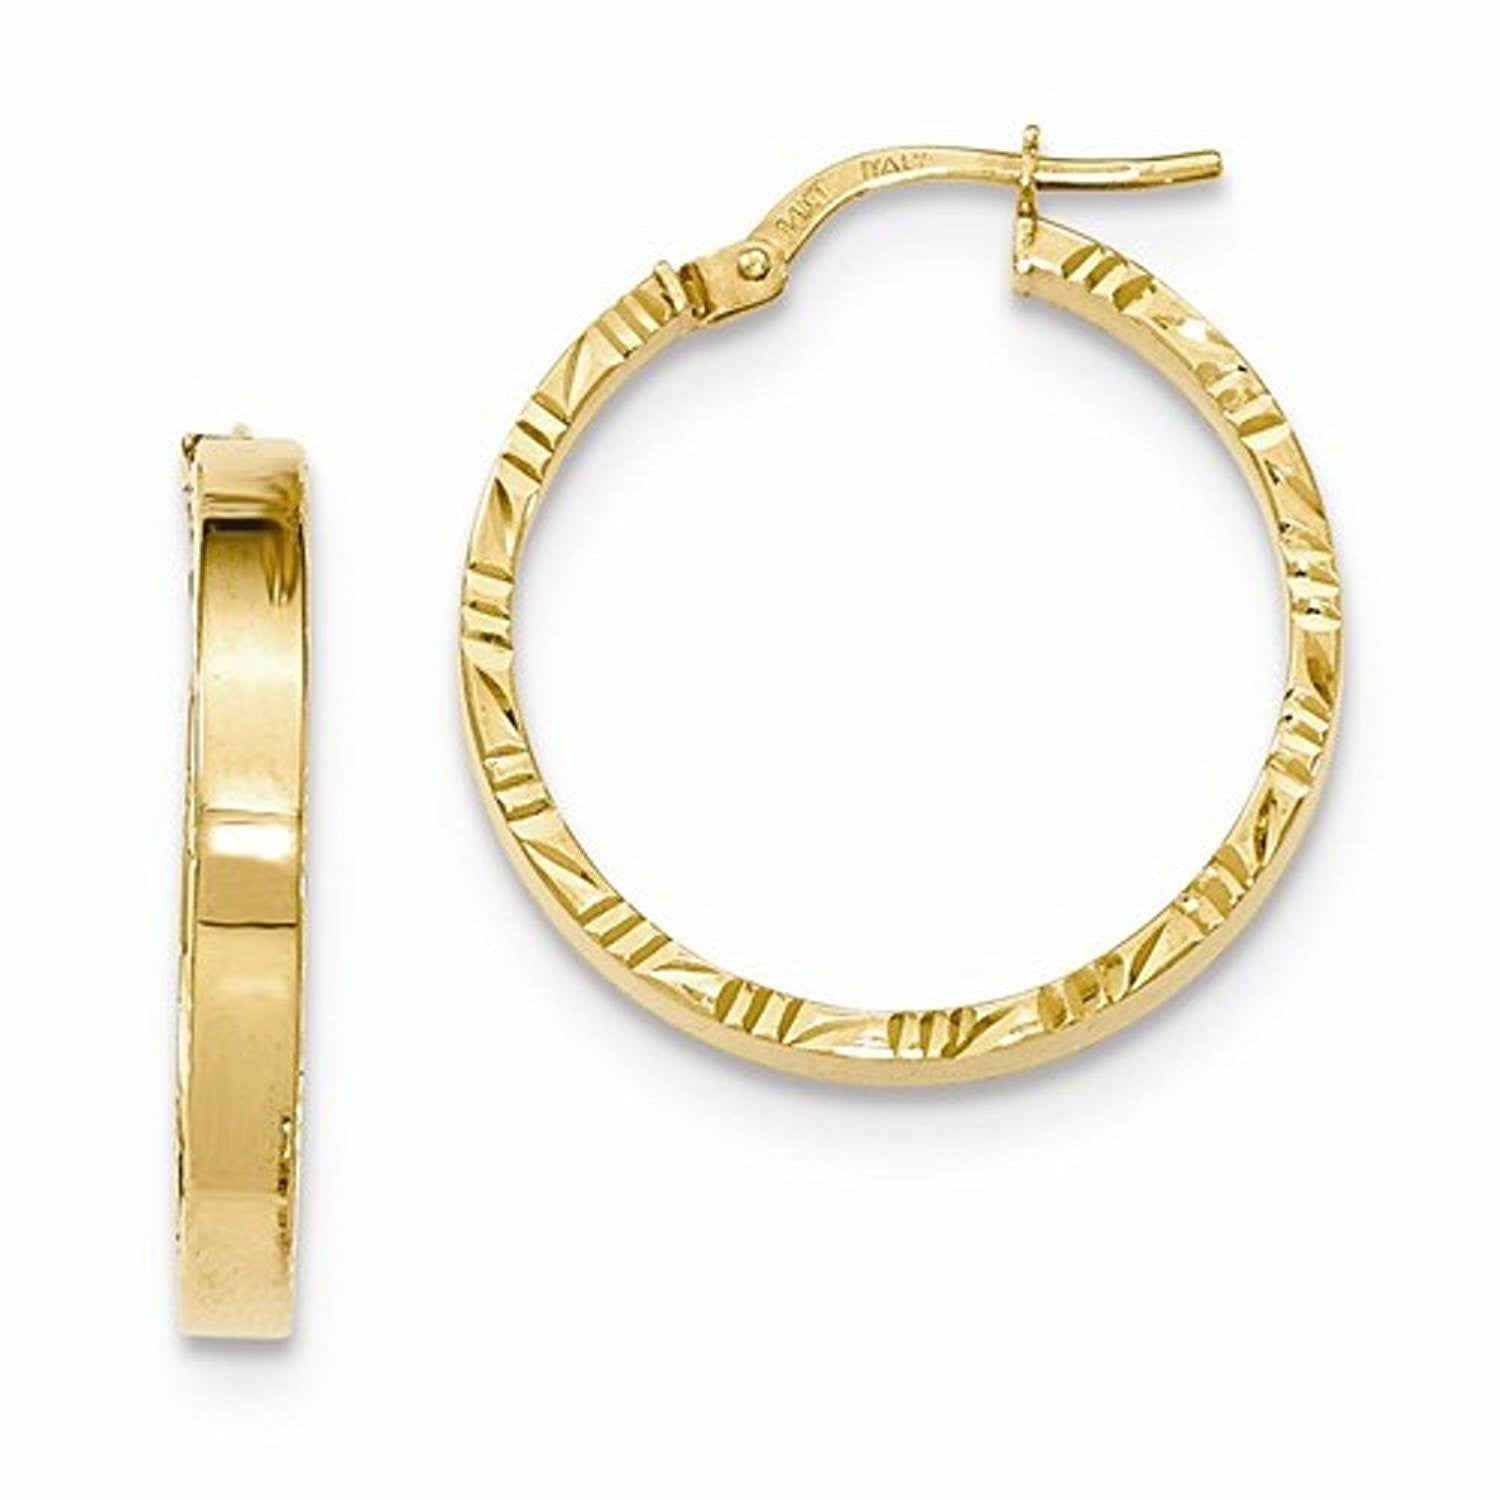 14K Yellow Gold 25mm x 3mm Textured Edge Hoop Earrings